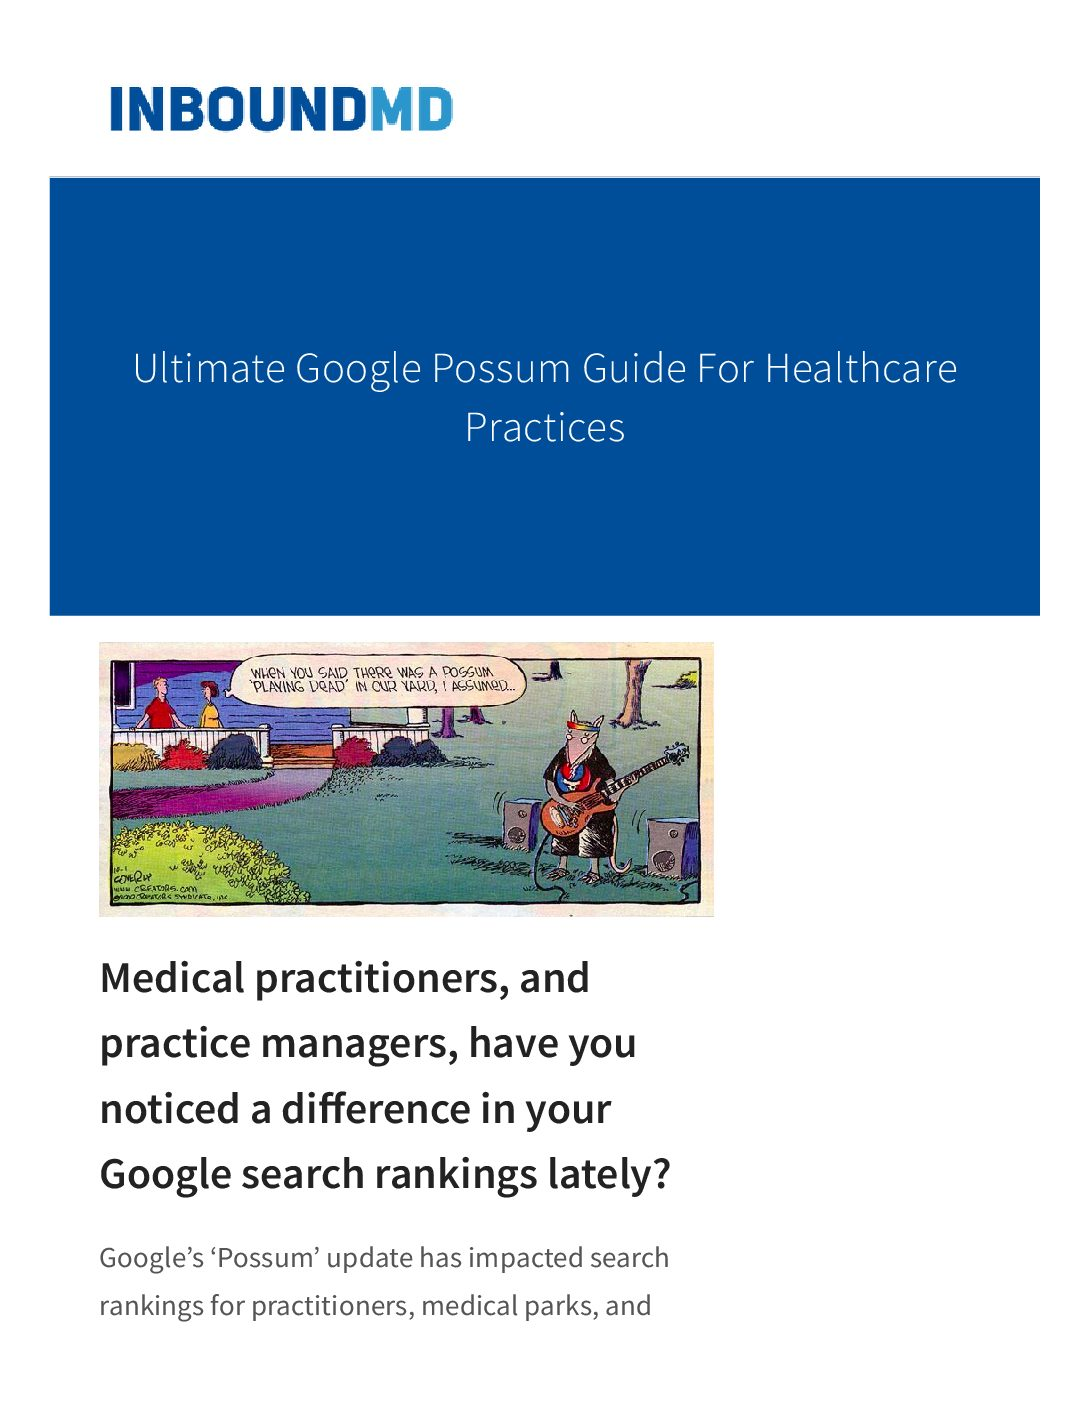 Guide - How To Write A Powerful Online Profile For Doctor Review Sites